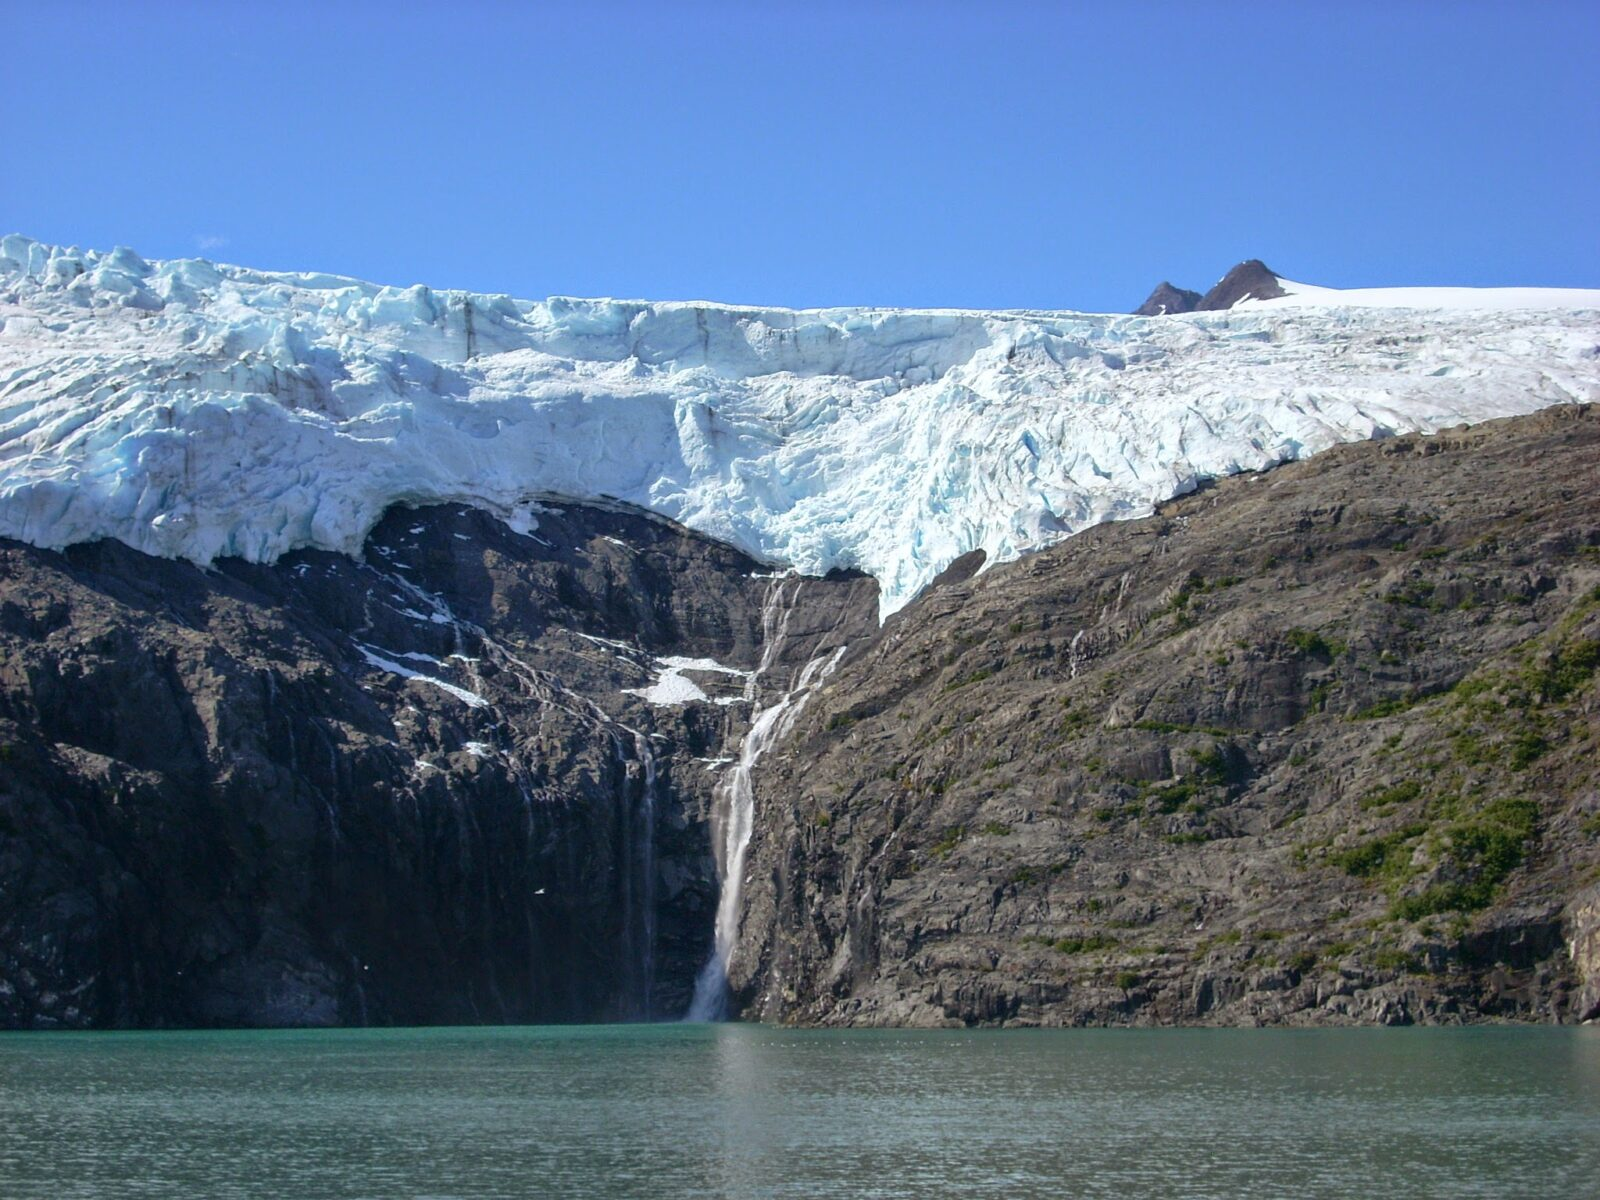 A hanging glacier over rocks next to the water with a small waterfall coming down on a glacier cruise, one of the best day trip tours in Alaska